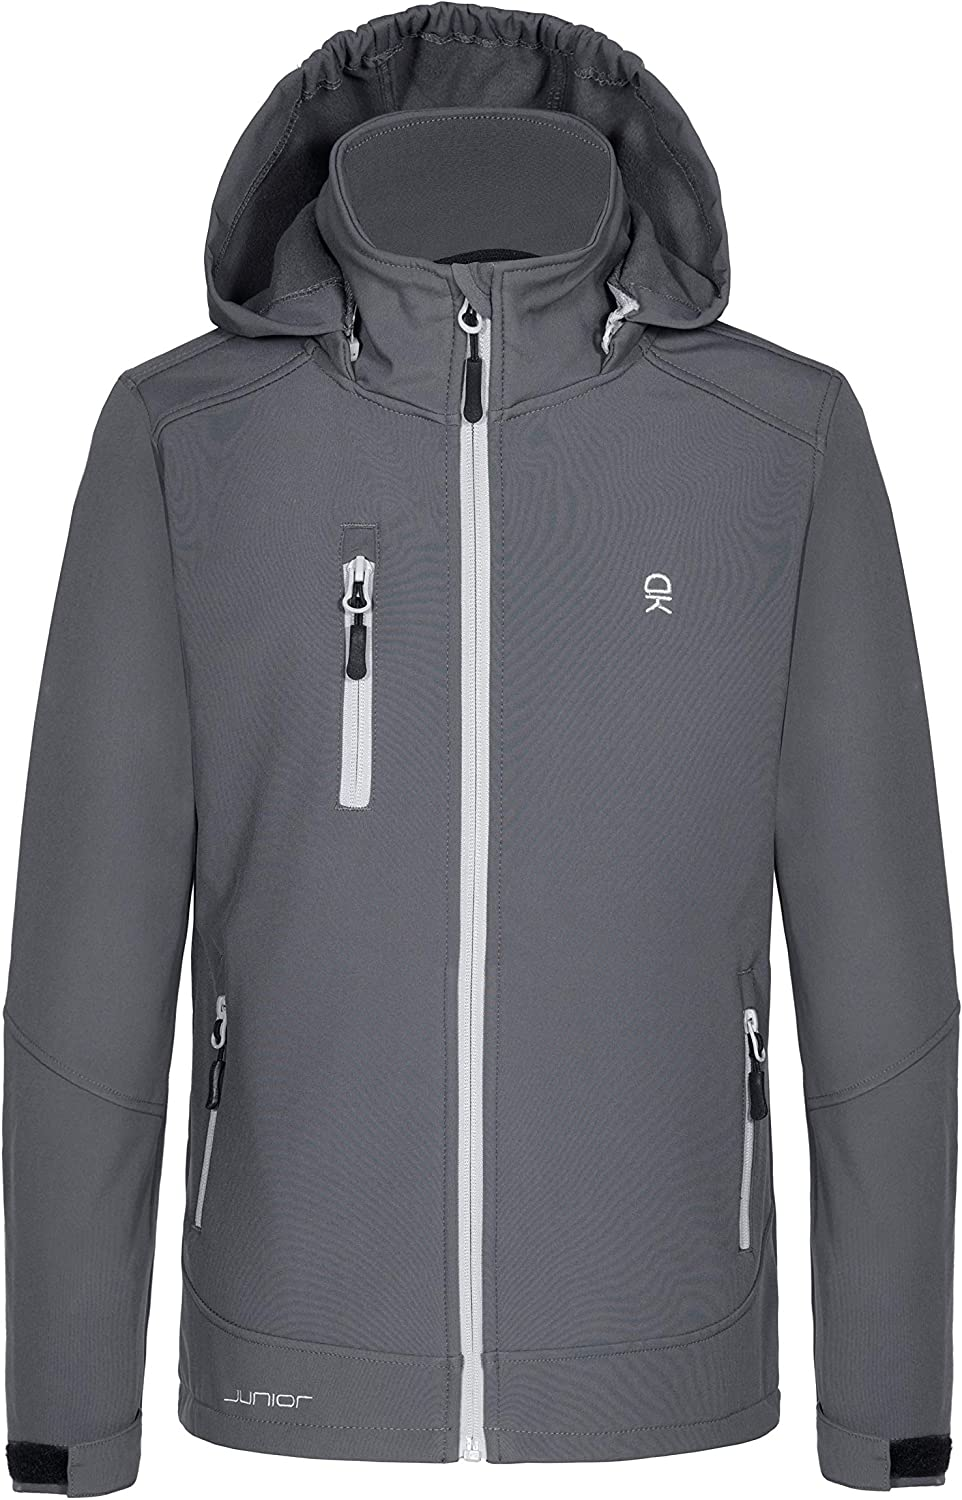 Little Donkey Andy Boys Softshell Jacket with Removable Hood Fleece Lined and Water Repellent Gray Size 128